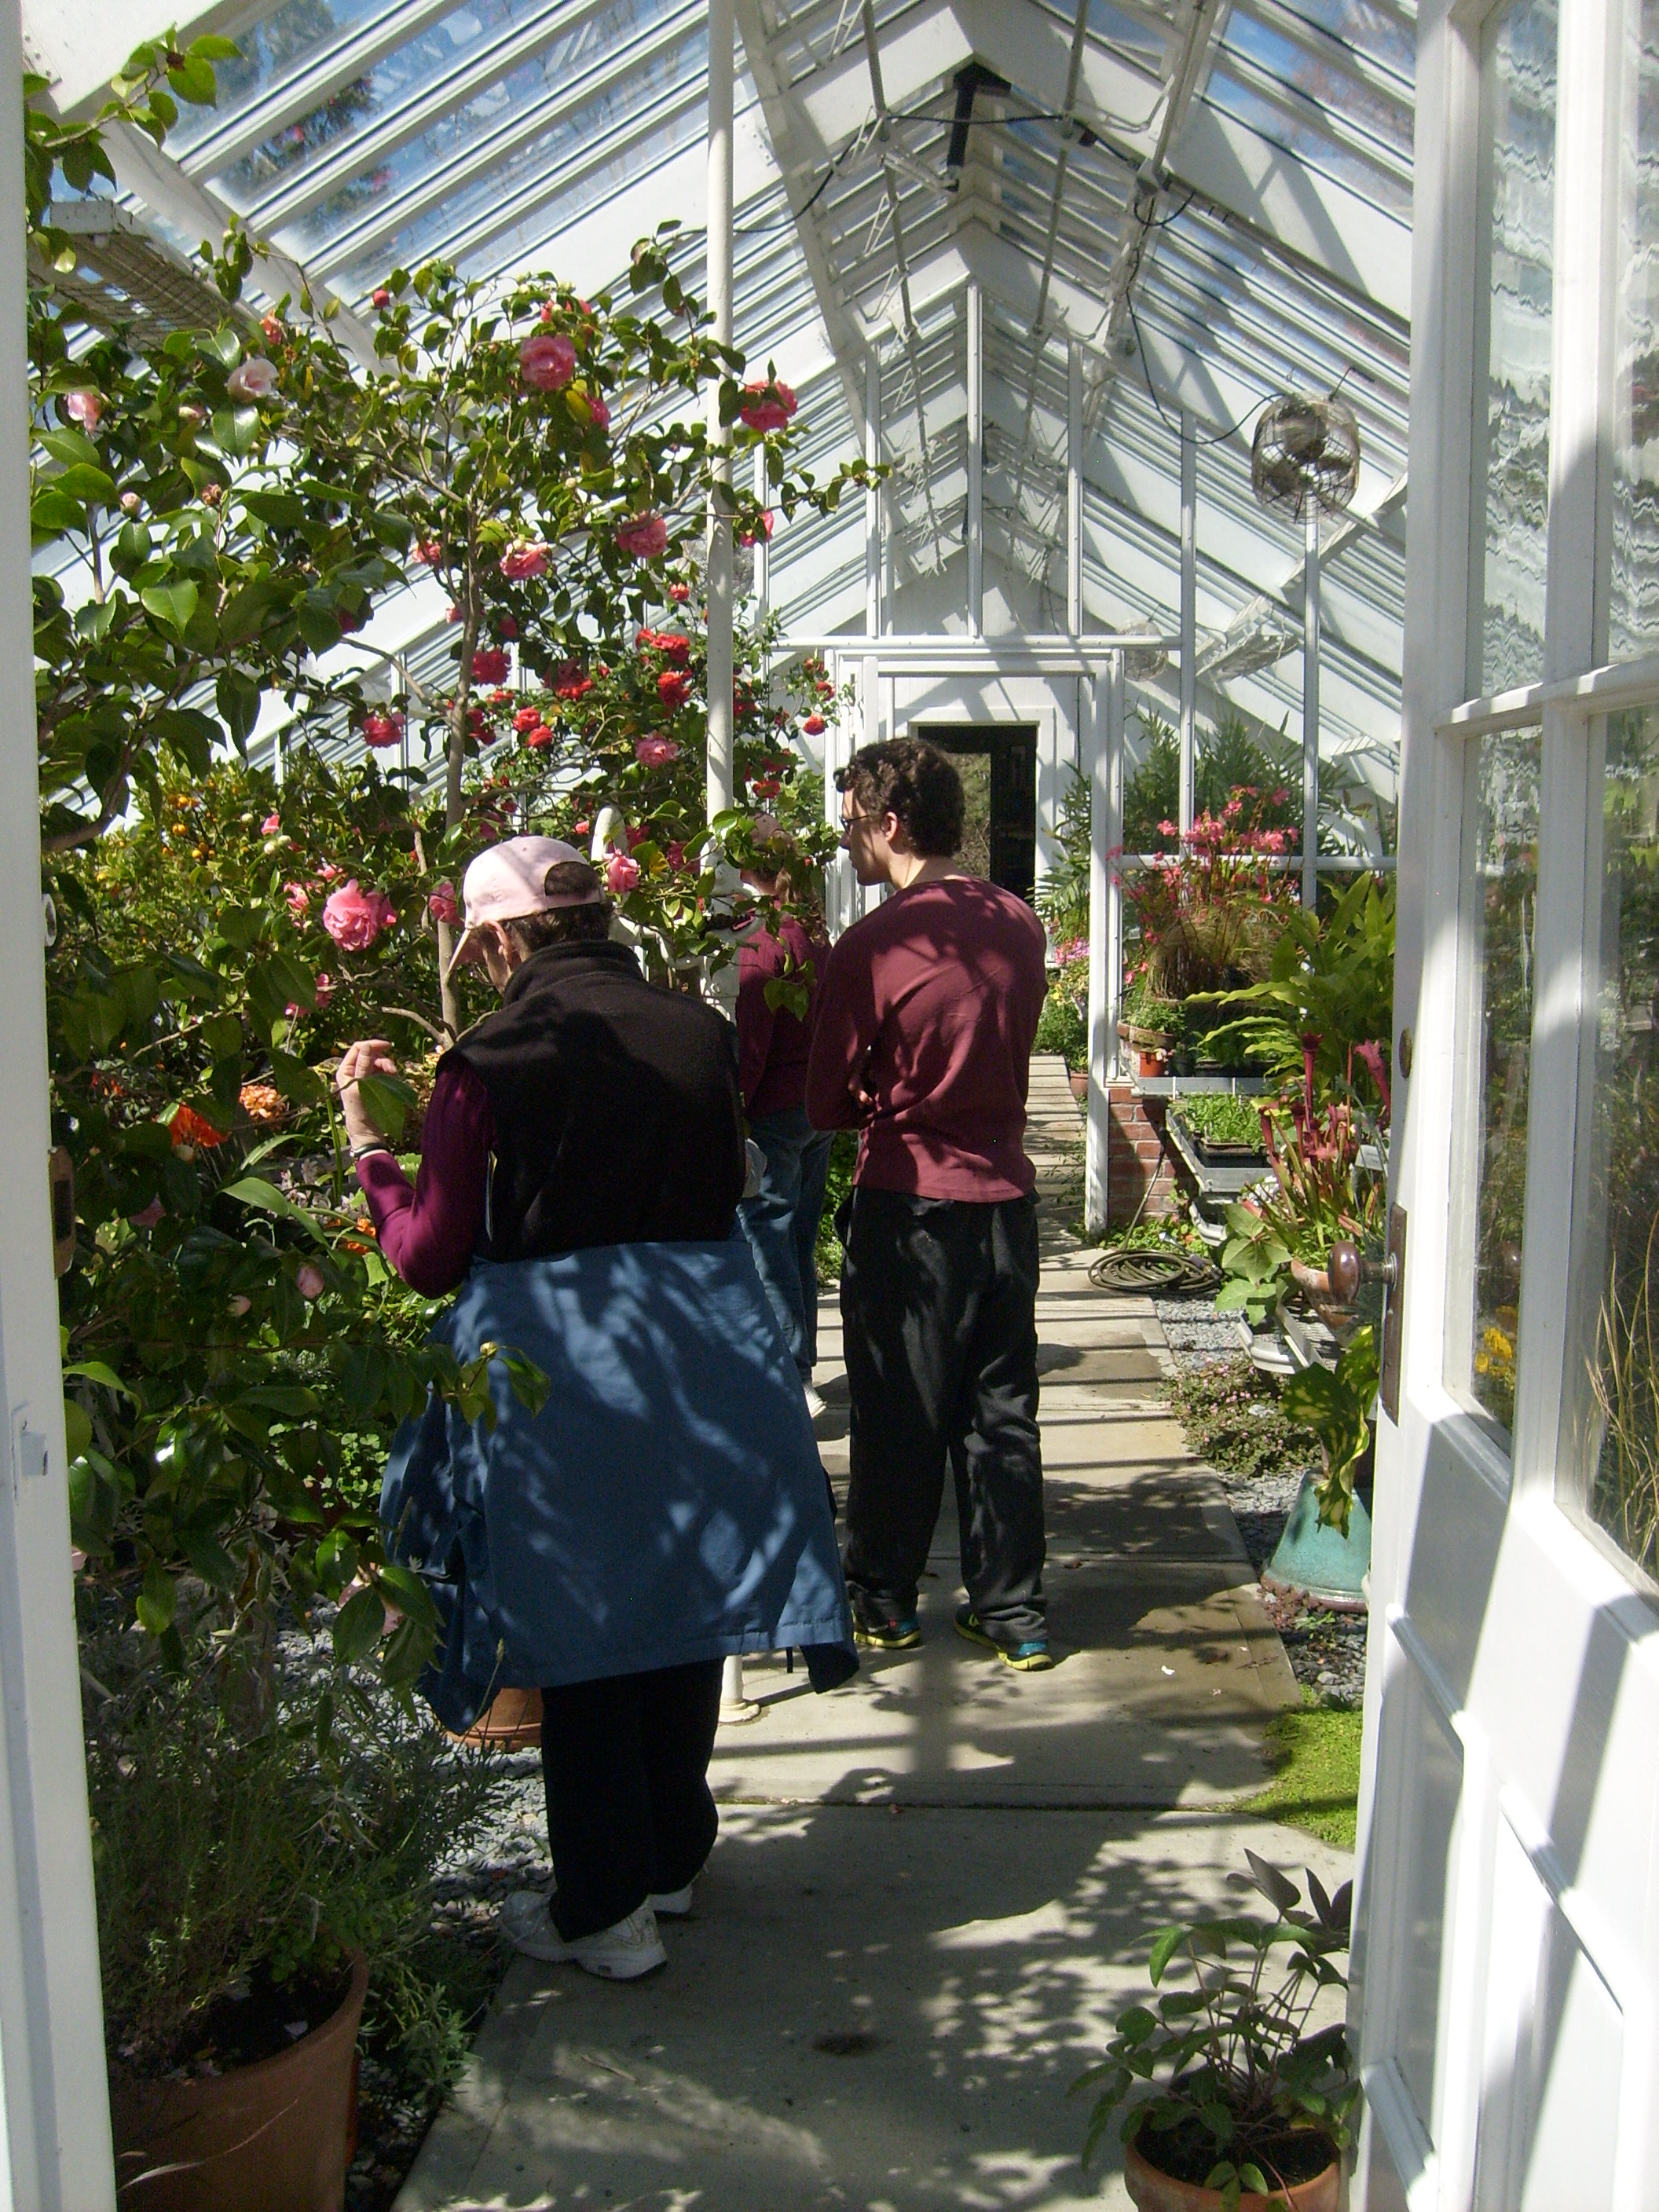 Mom and Ben in the greenhouse at Blythwold